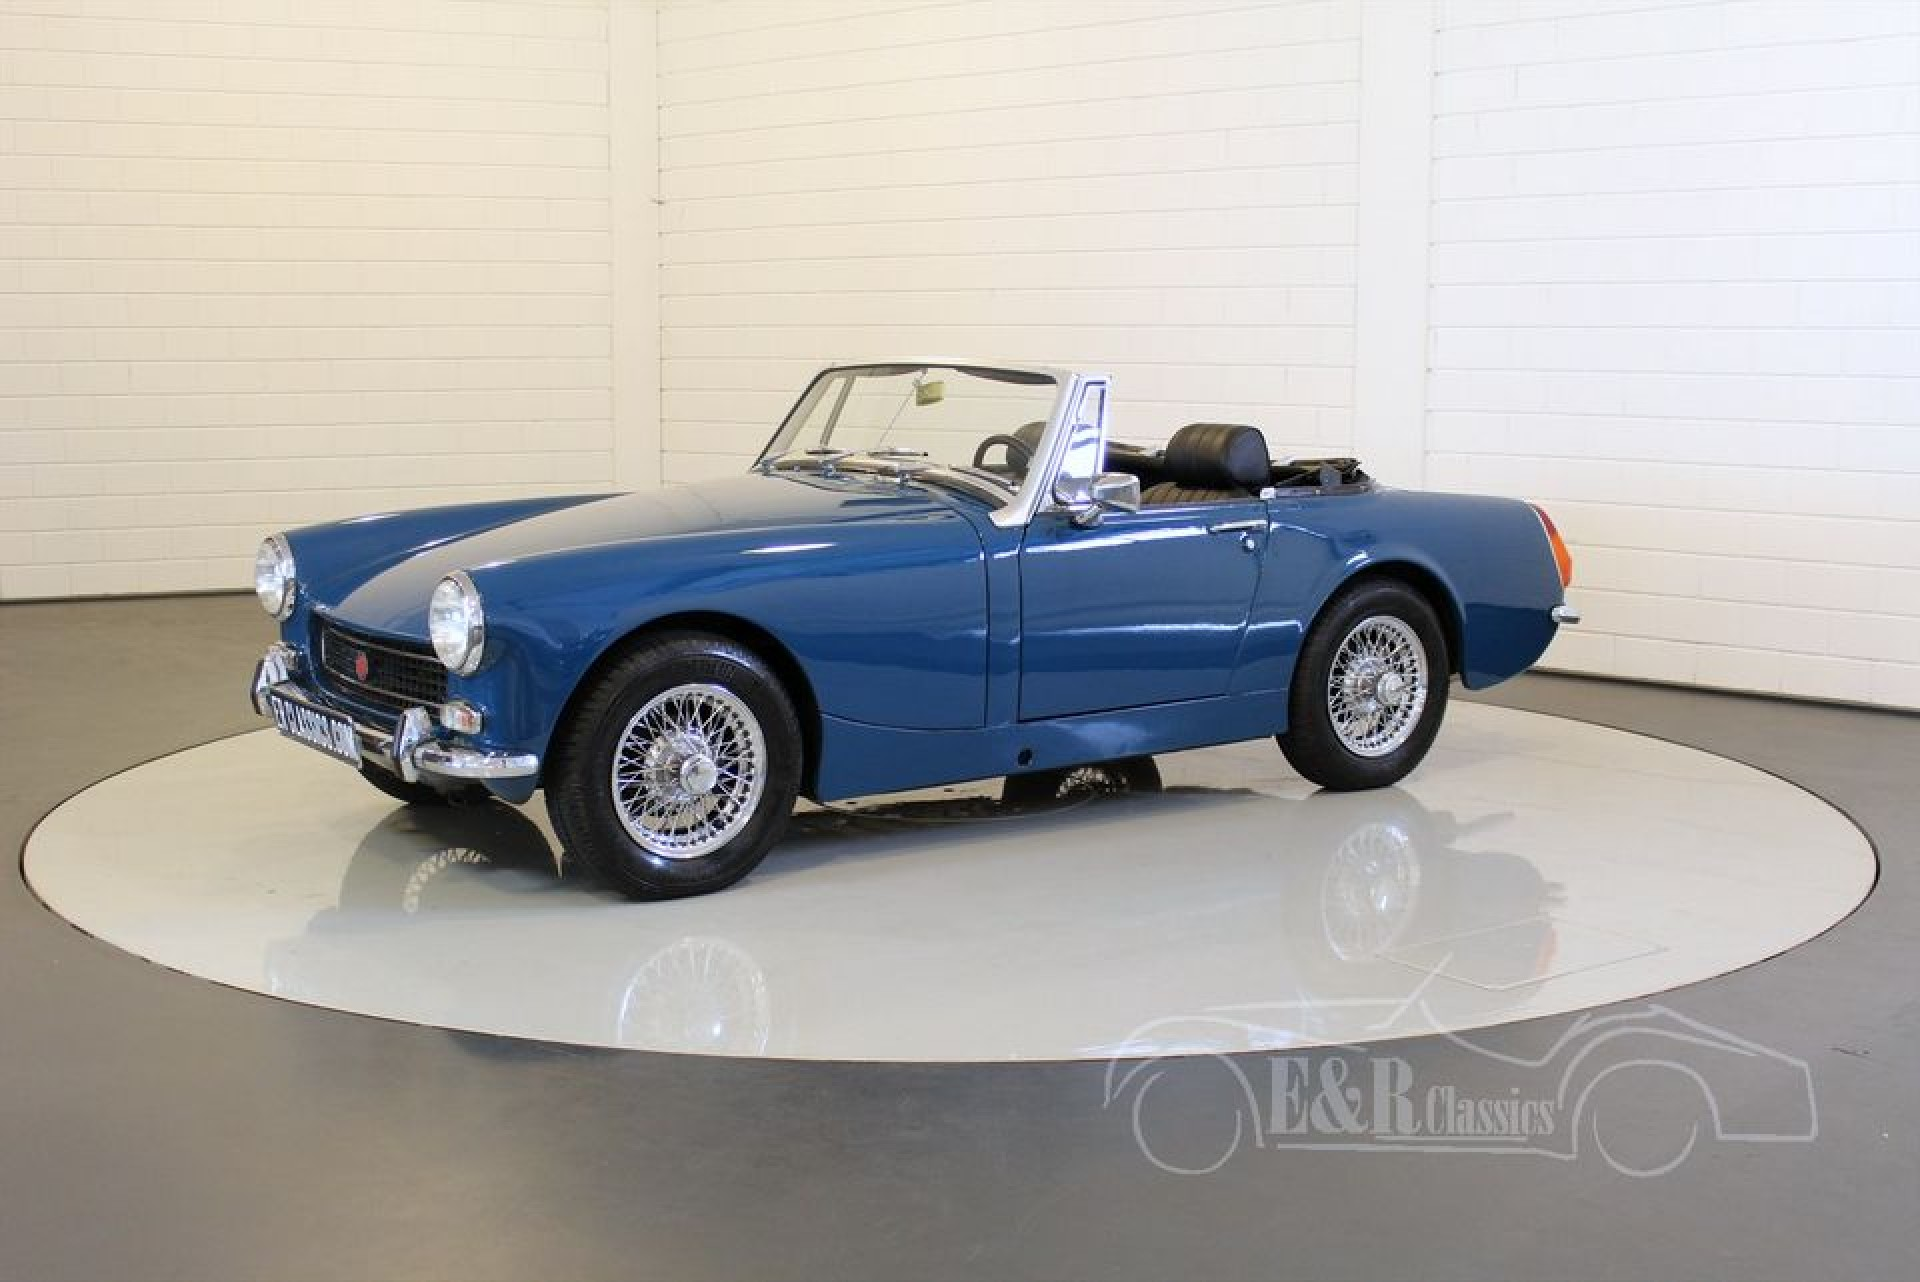 mg midget cabriolet 1972 vendre erclassics. Black Bedroom Furniture Sets. Home Design Ideas